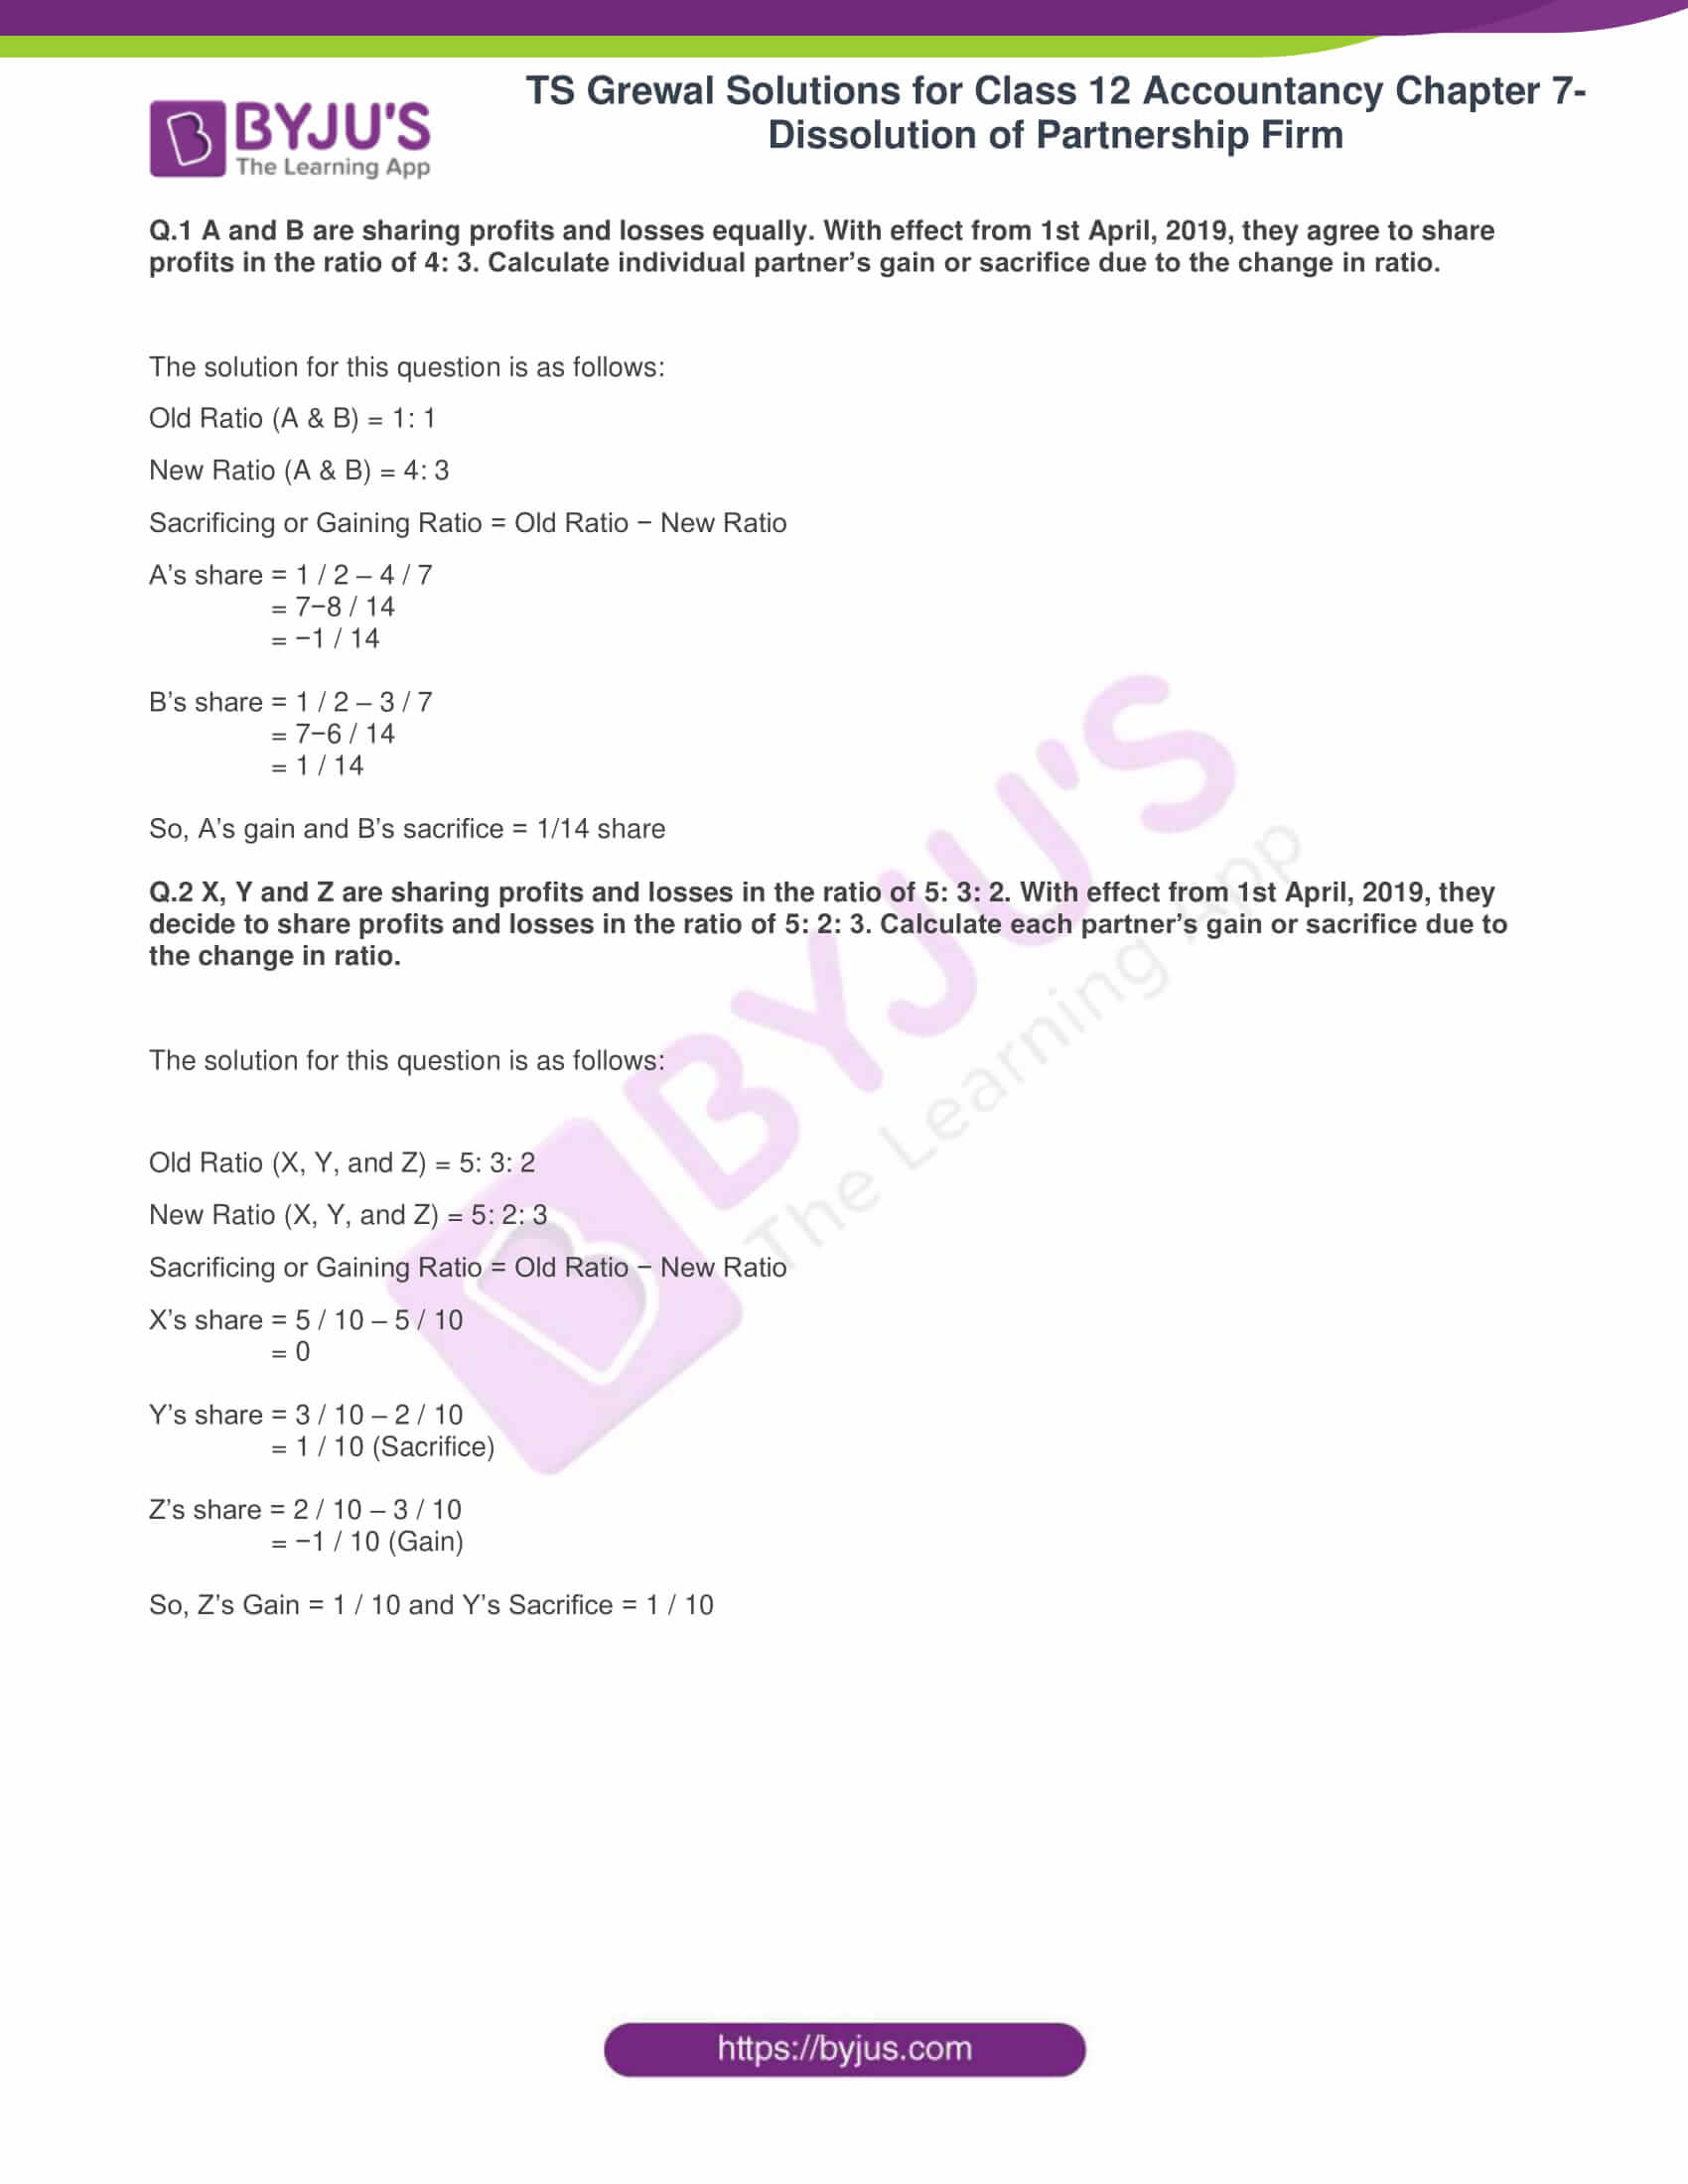 ts grewal solutions class 12 accountancy vol 1 chapter 4 change in profit 01